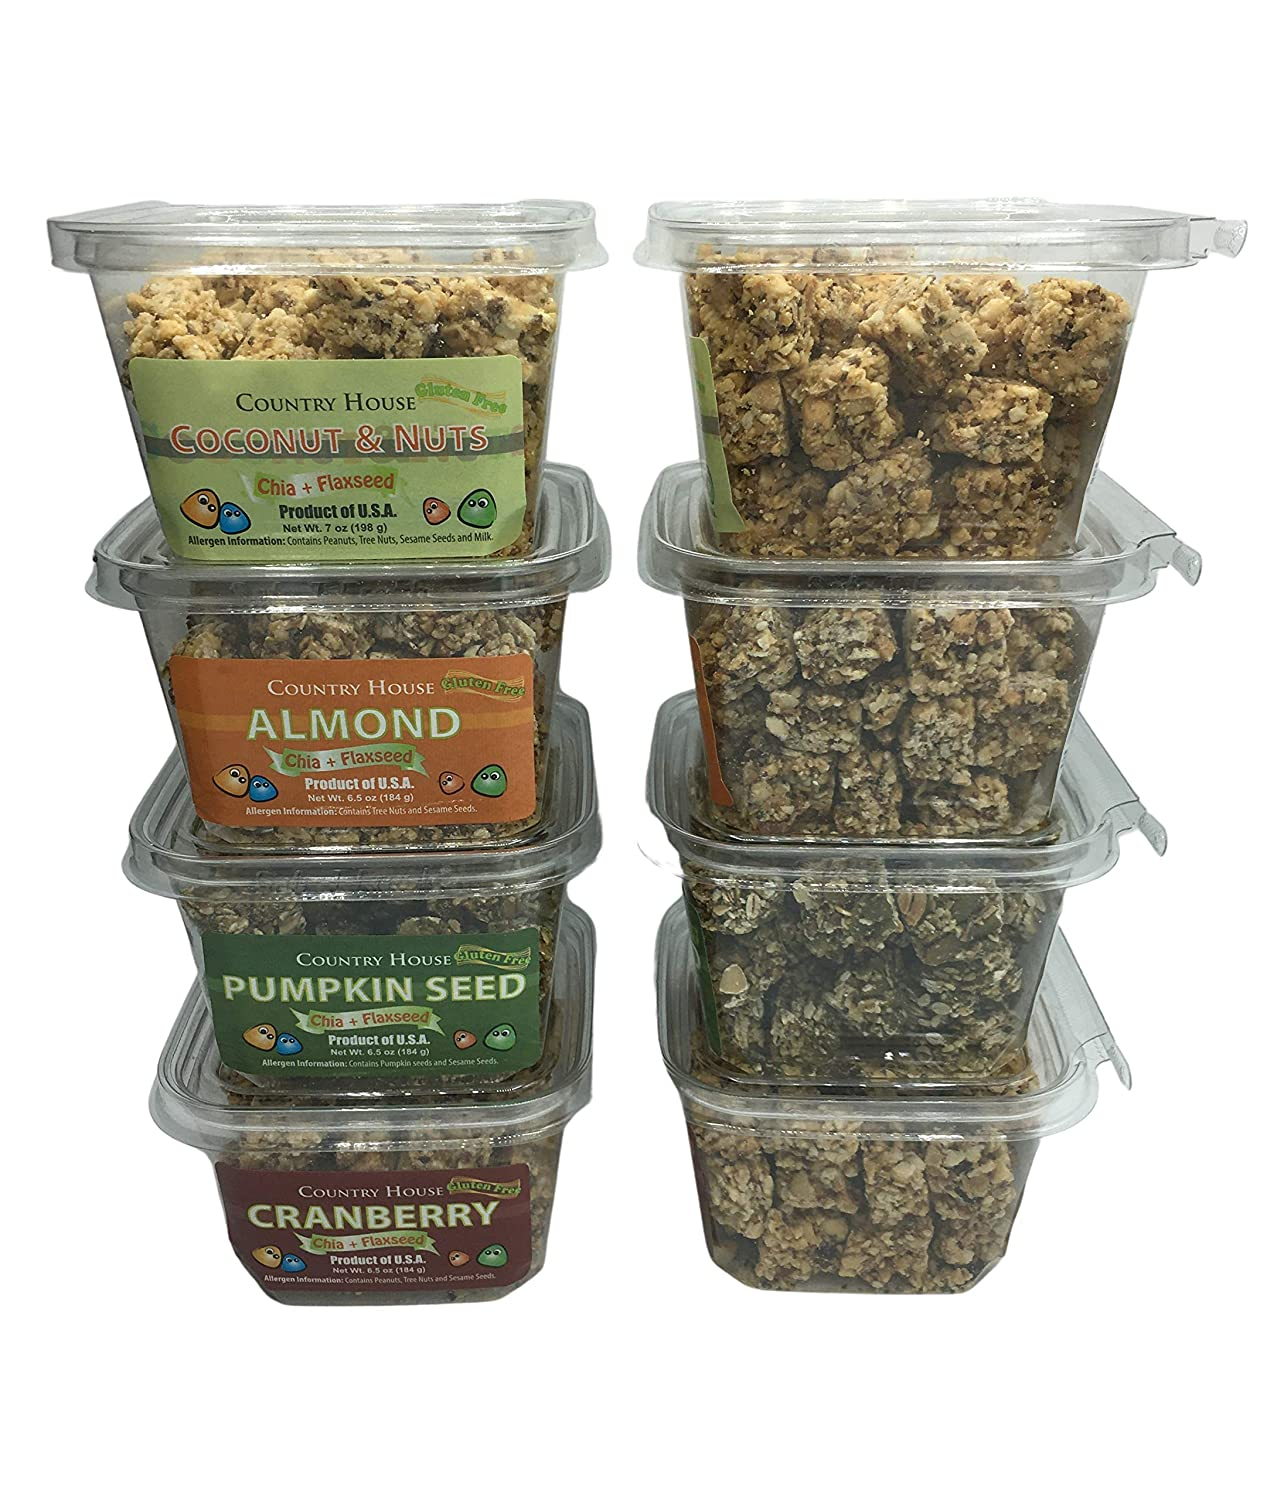 Country House Variety Nut Snacks (8 Counts) with Chia and Flaxseed, All Natural, Easy to Read Ingredients, No Artificial or Natural Flavors Added, No Gluten, Low Sodium, and a Crisp in Every Bite!